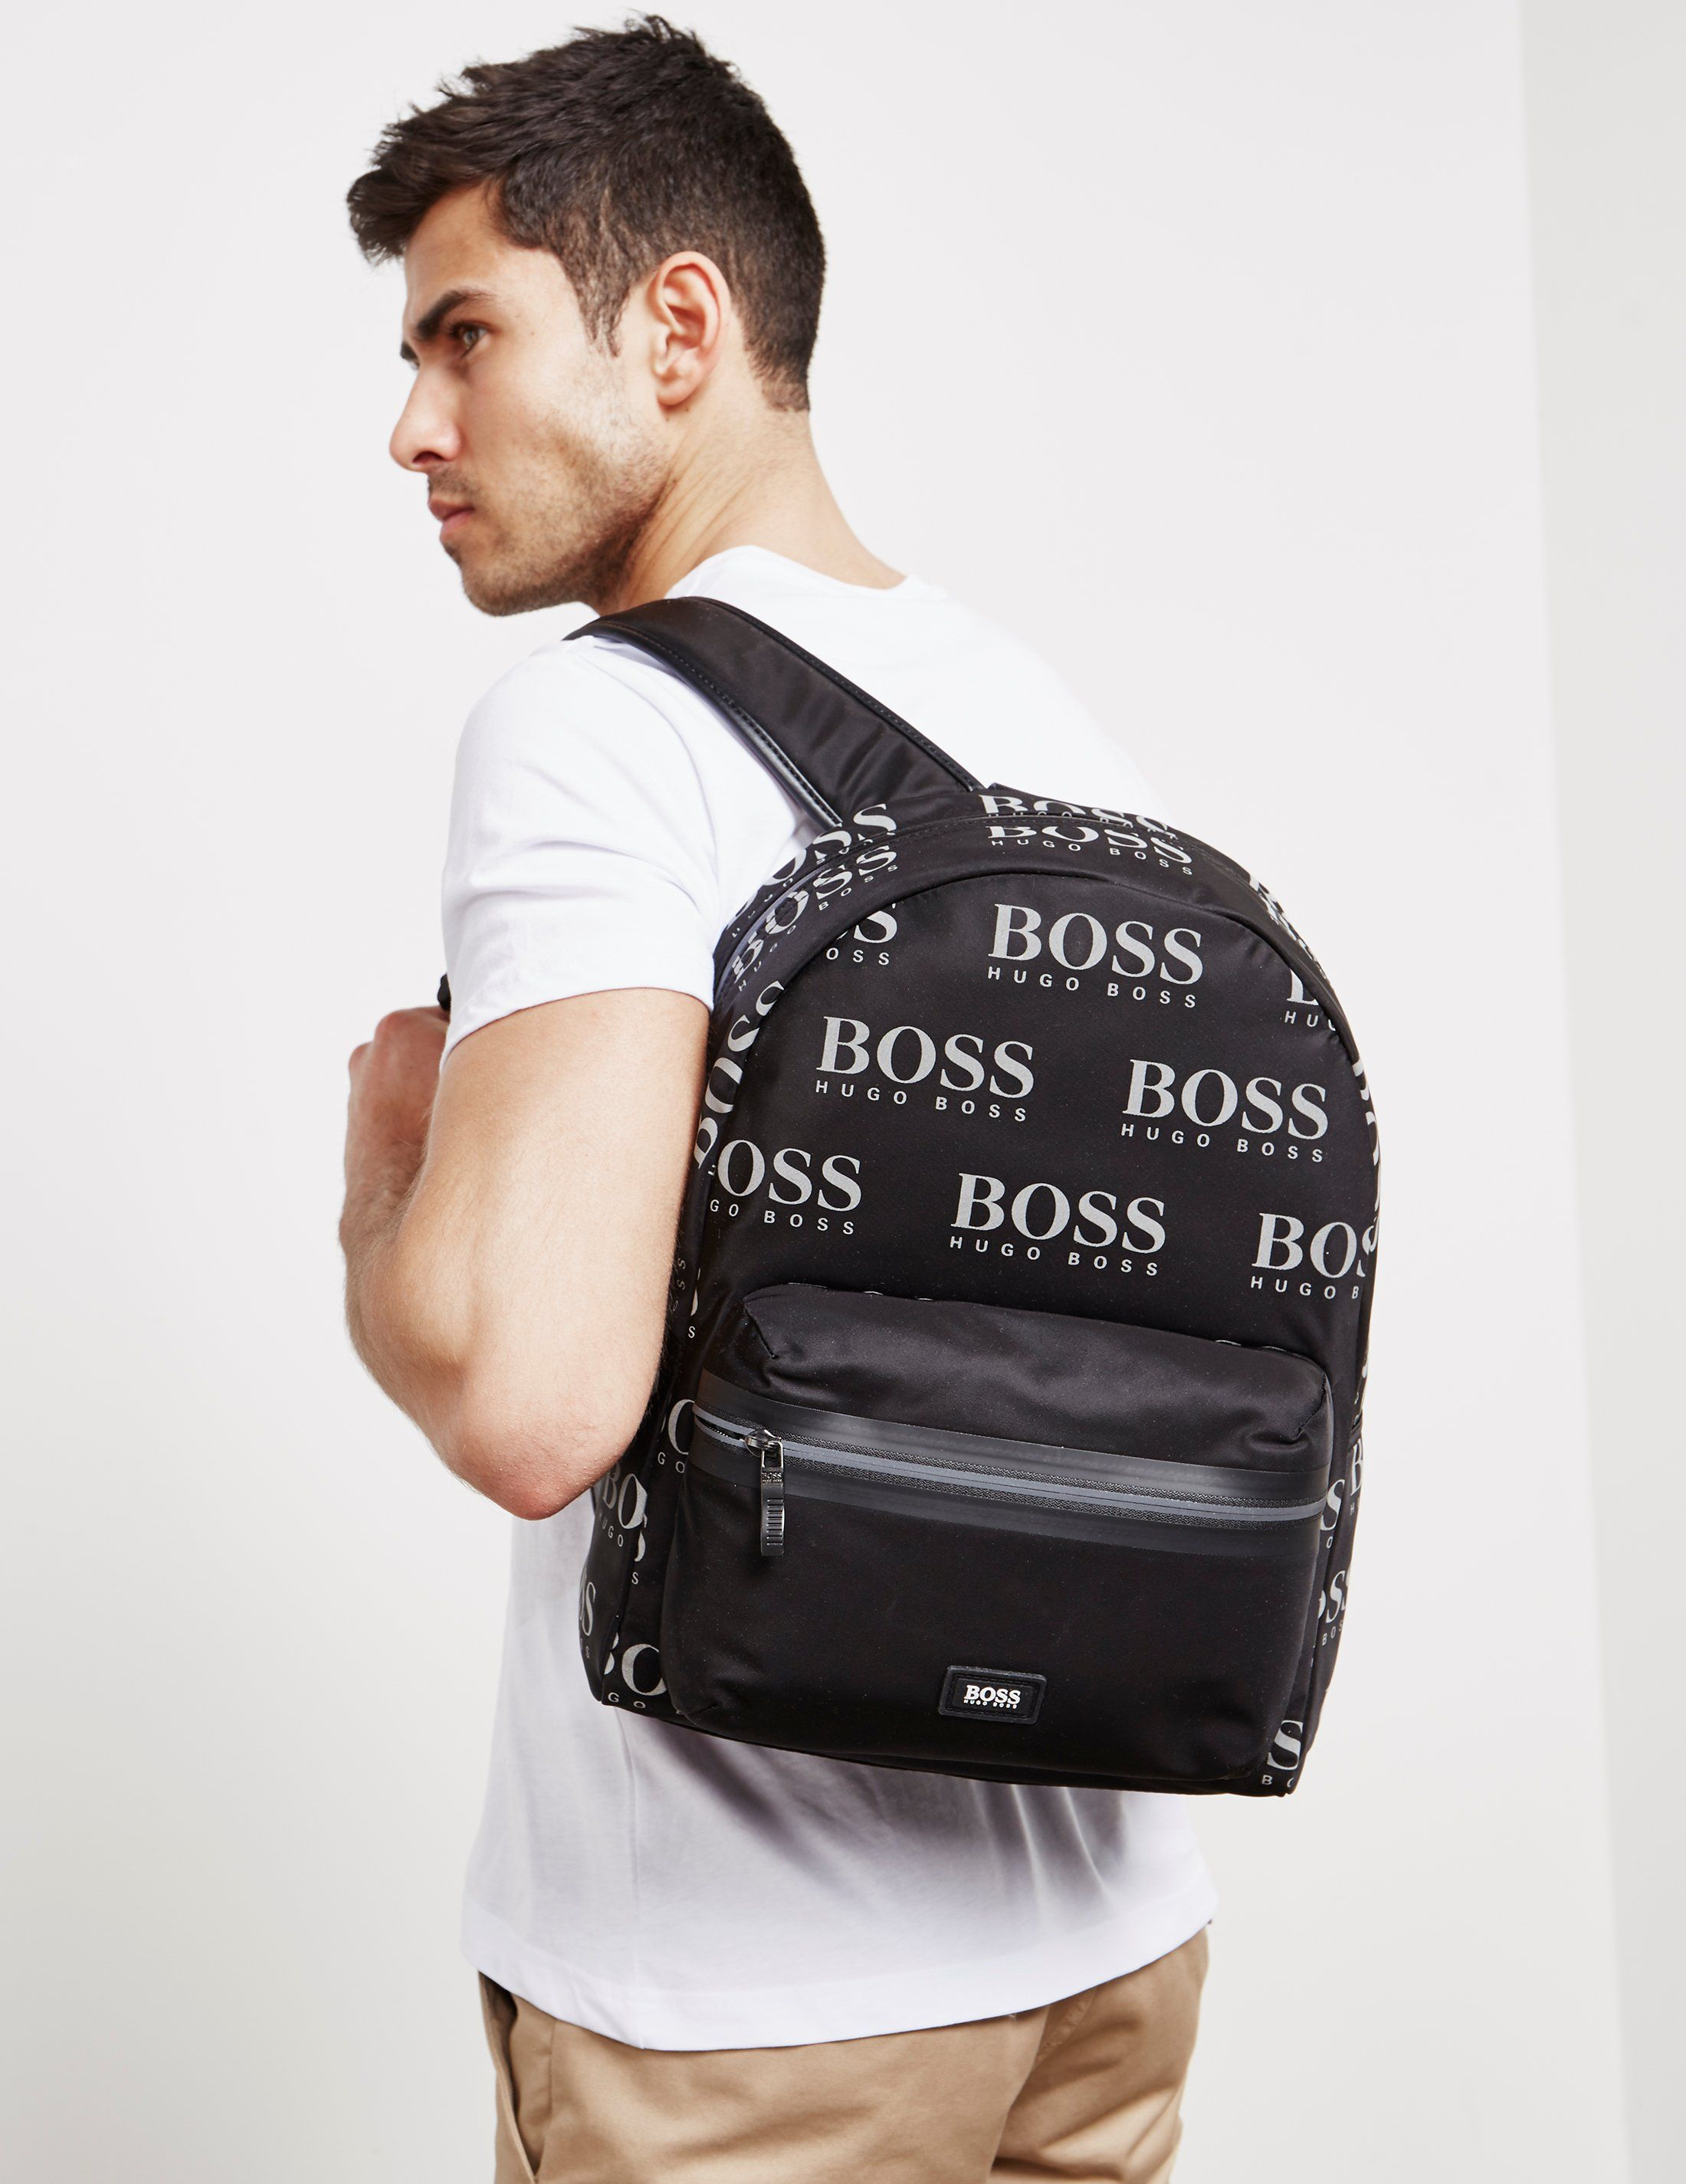 BOSS Iconic Print Backpack